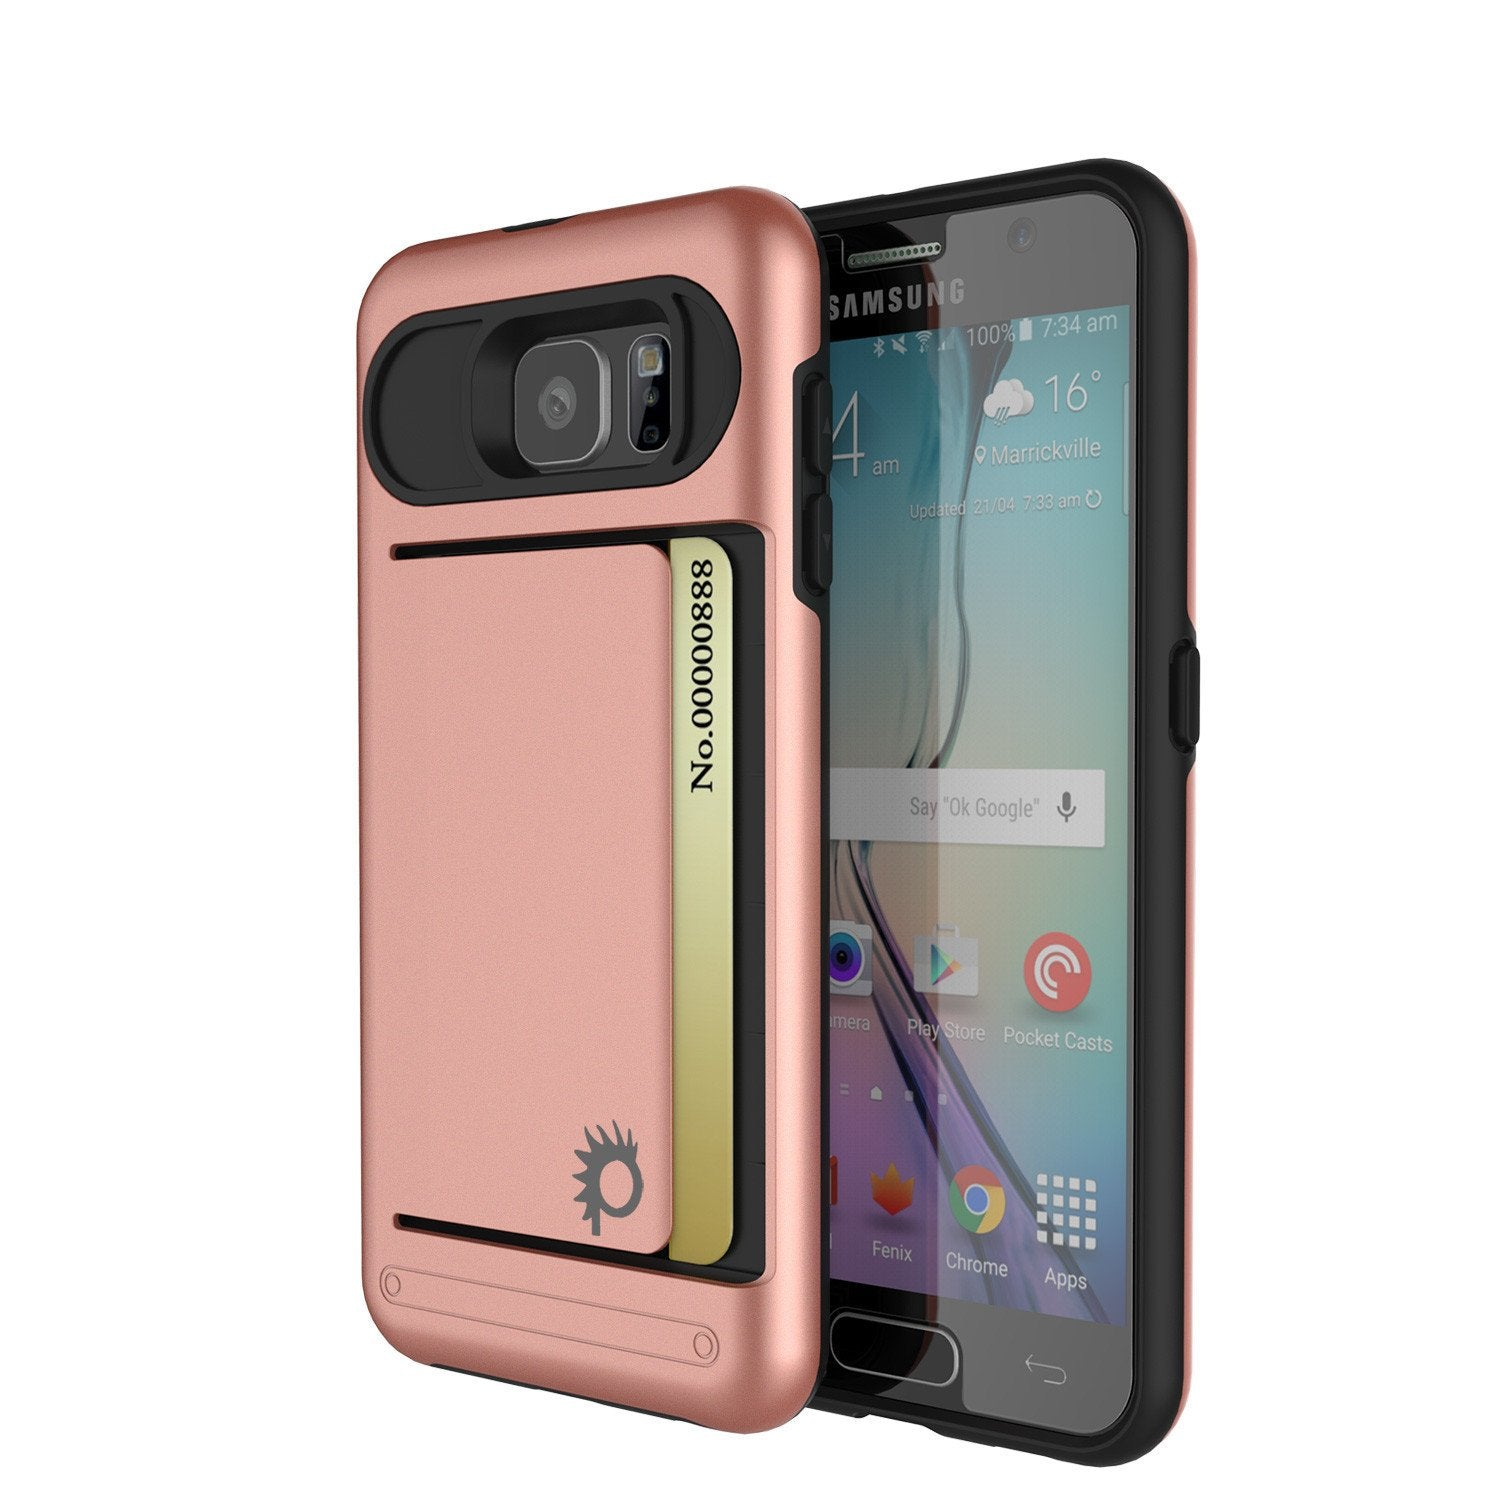 Galaxy S6 EDGE Case PunkCase CLUTCH Rose Gold Series Slim Armor Soft Cover Case w/ Screen Protector